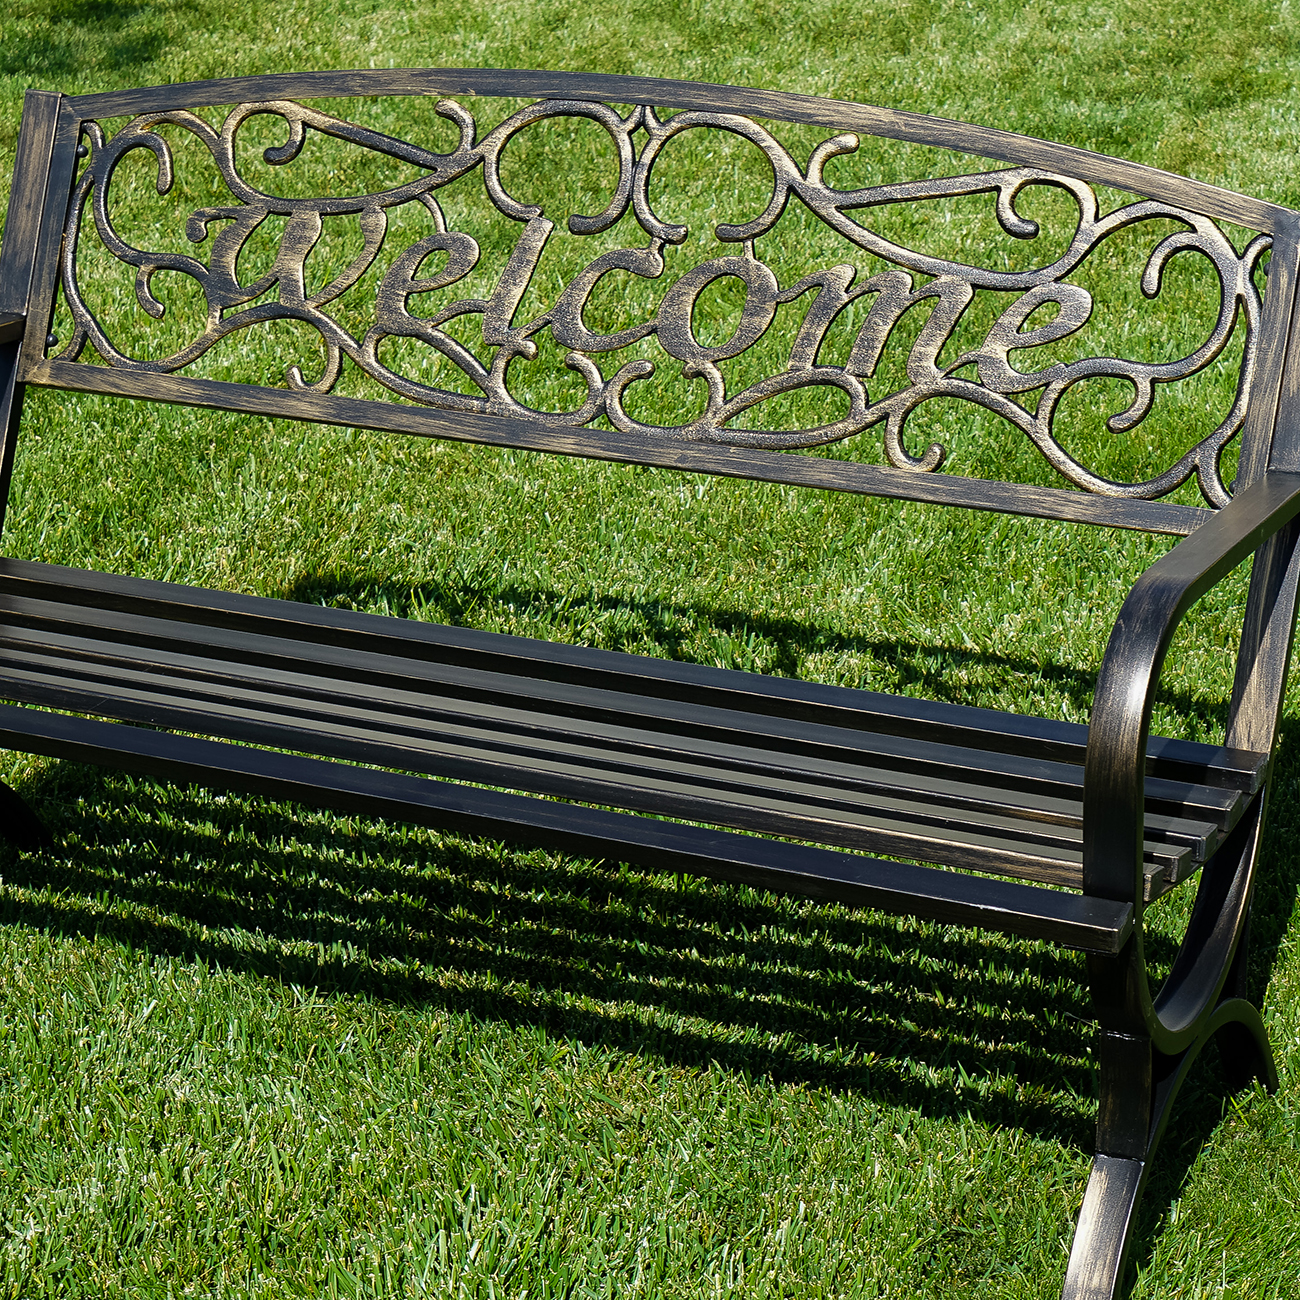 Elegance Welcome Design Outdoor Park Bench Backyard Yard